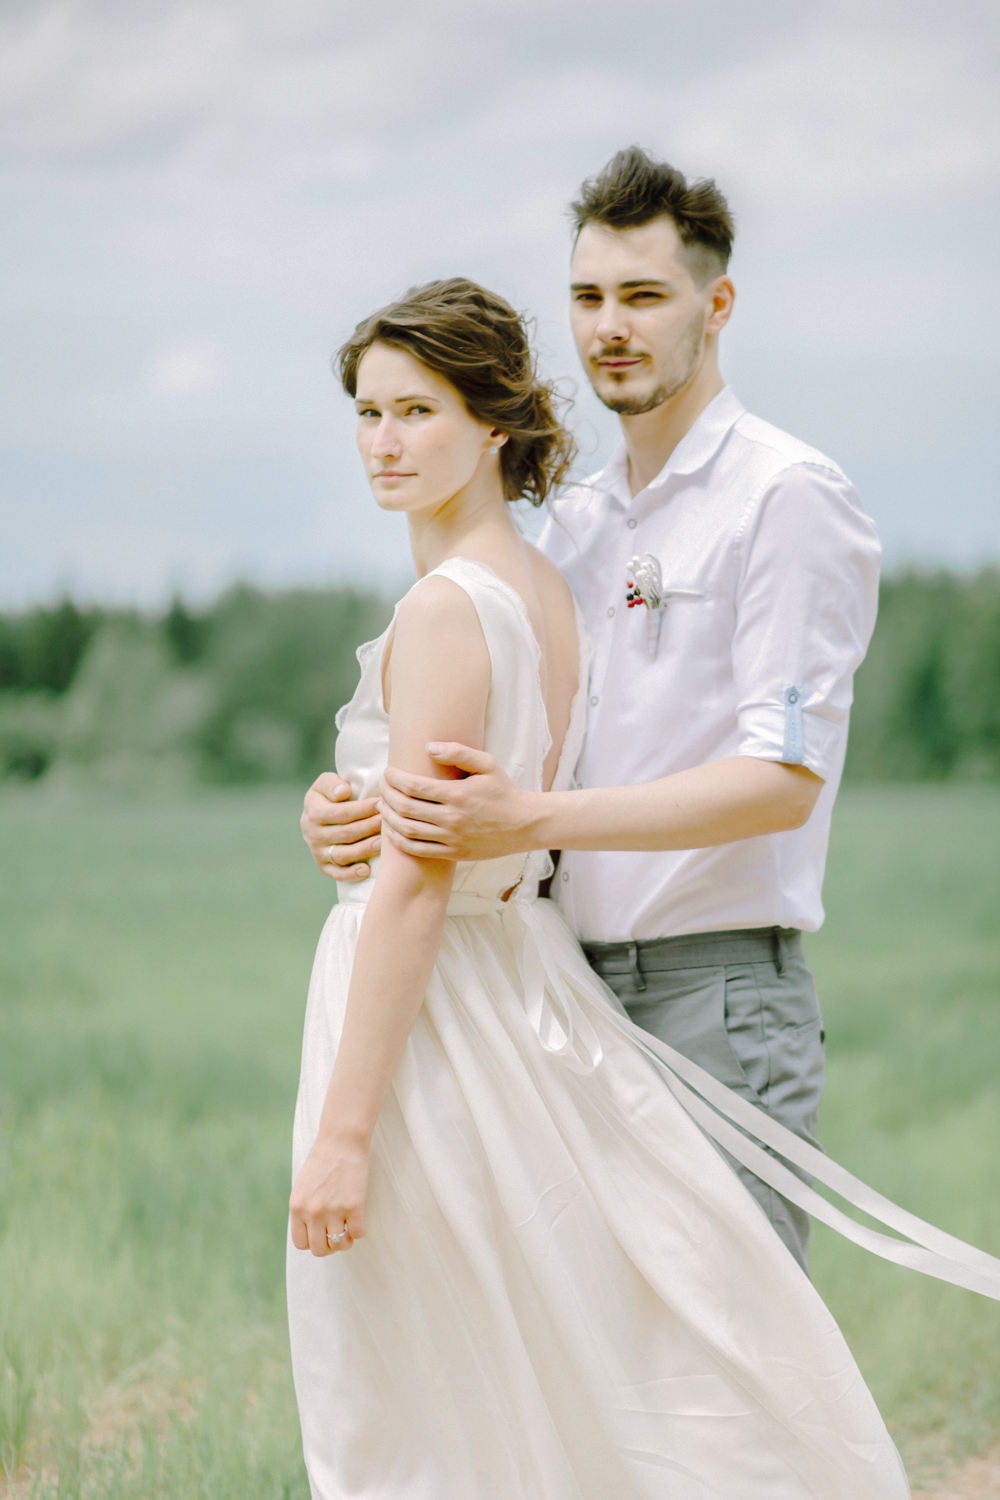 polinastudio.ru_wedding_ar-19